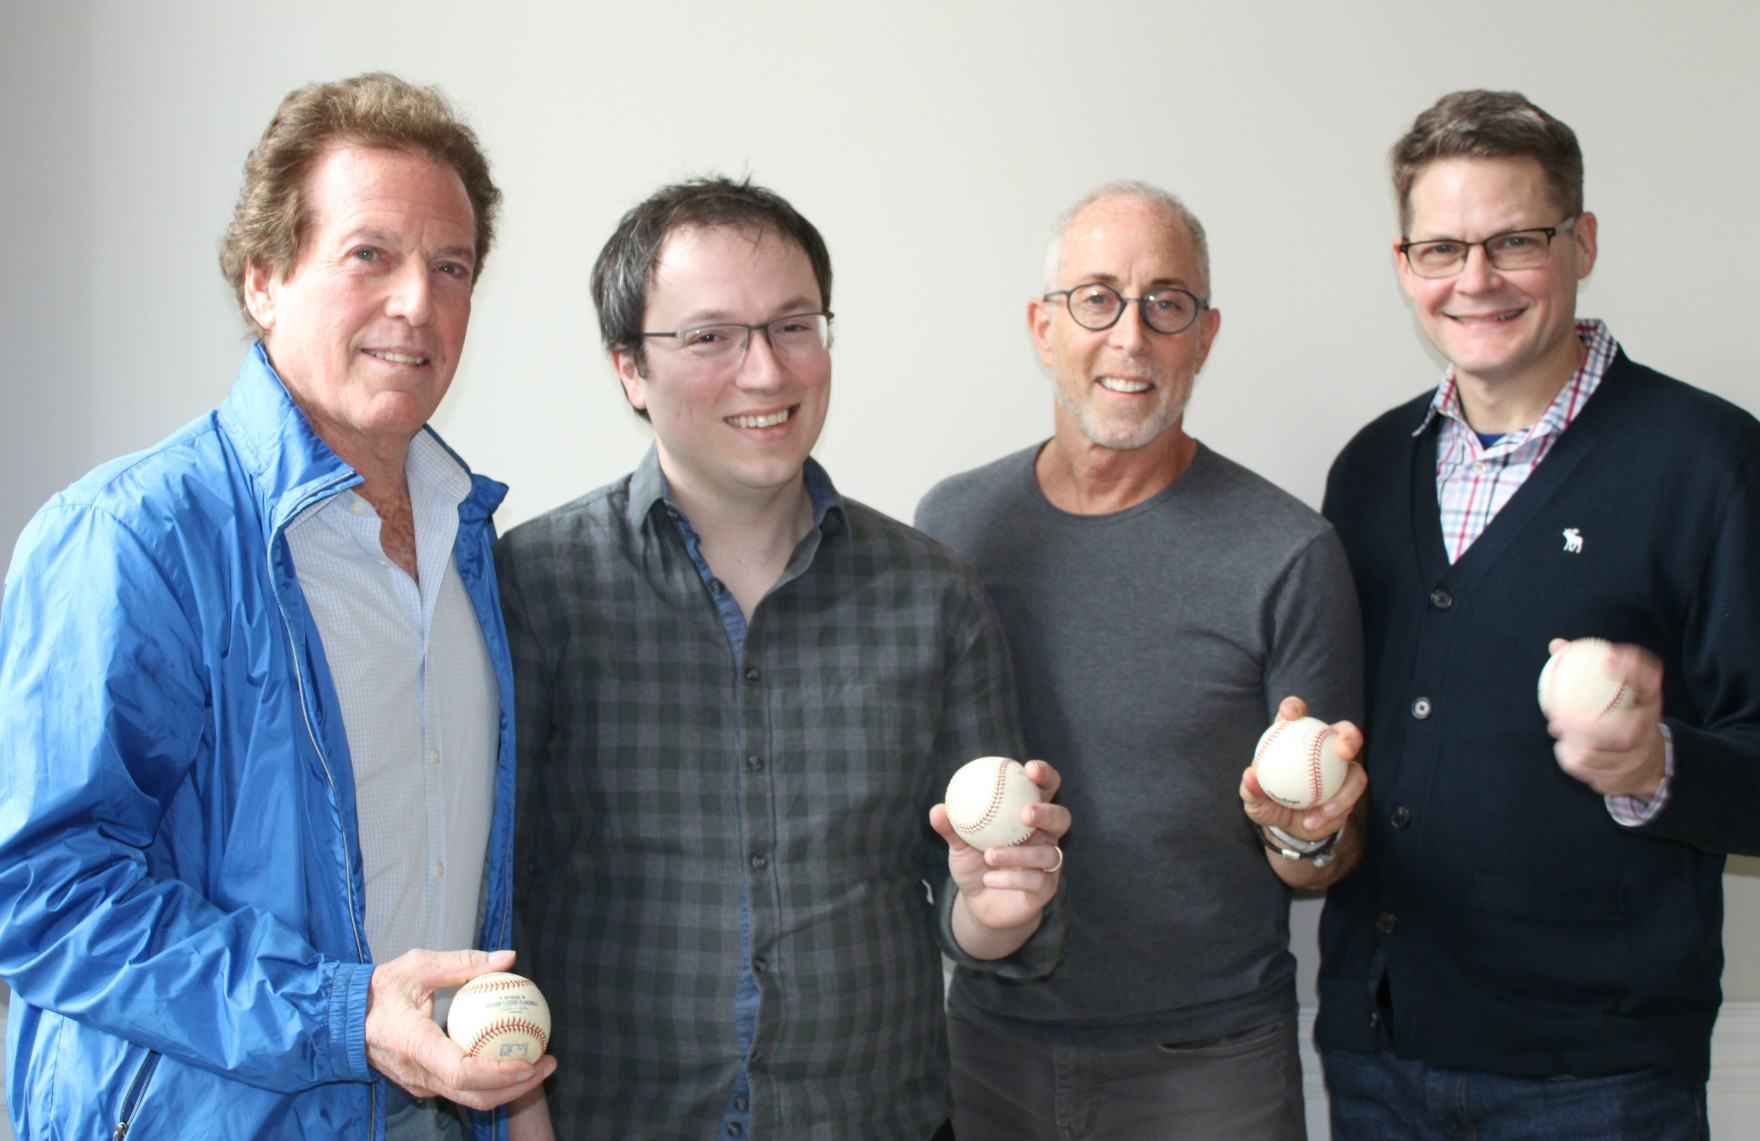 William Marovitz Michael Mahler Jason Brett Damon Kiely Cropped.jpg